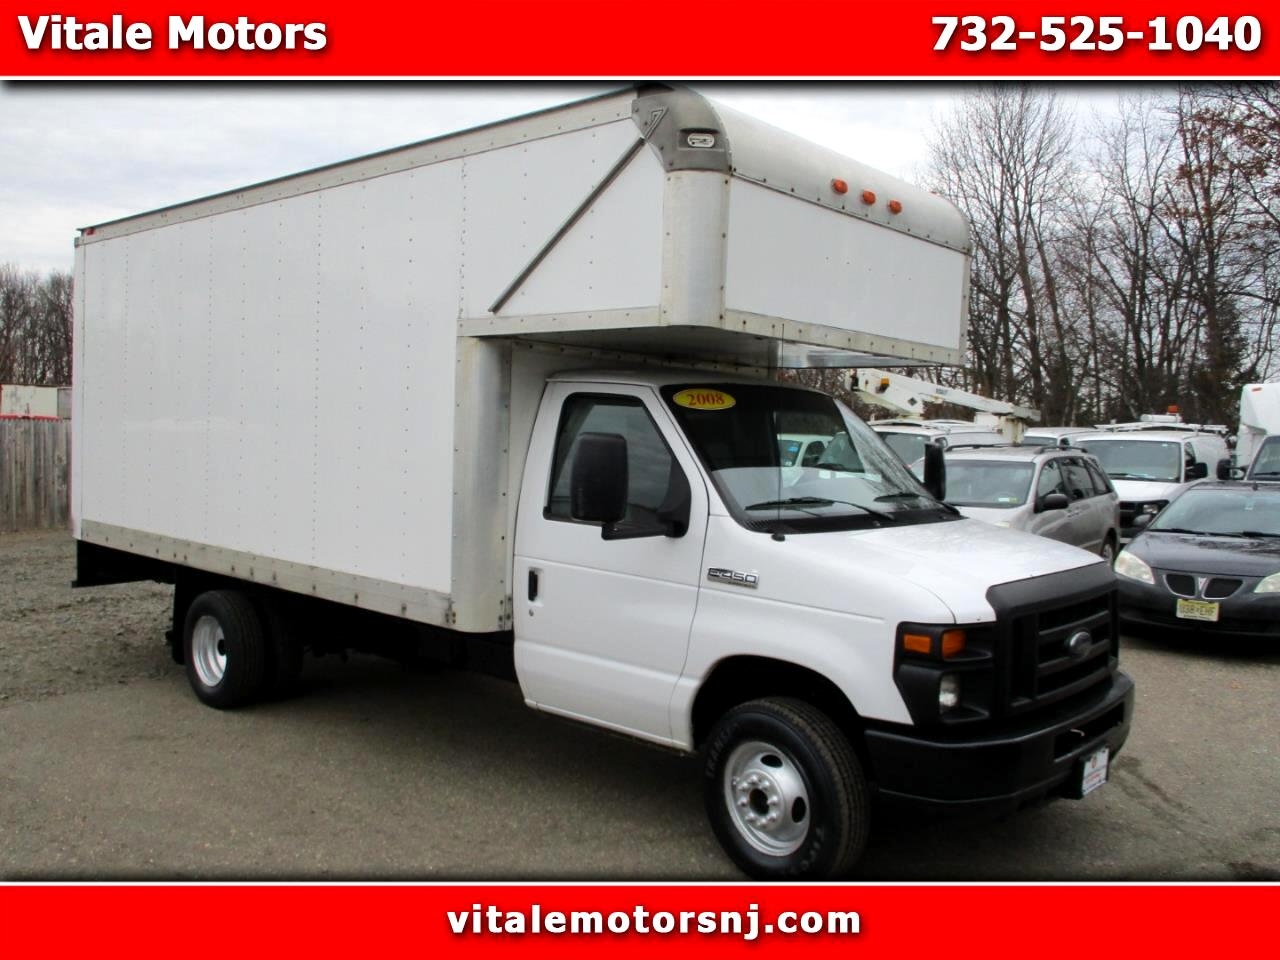 "2008 Ford Econoline E-450 14' 6"" BOX TRUCK W/ ATTIC"